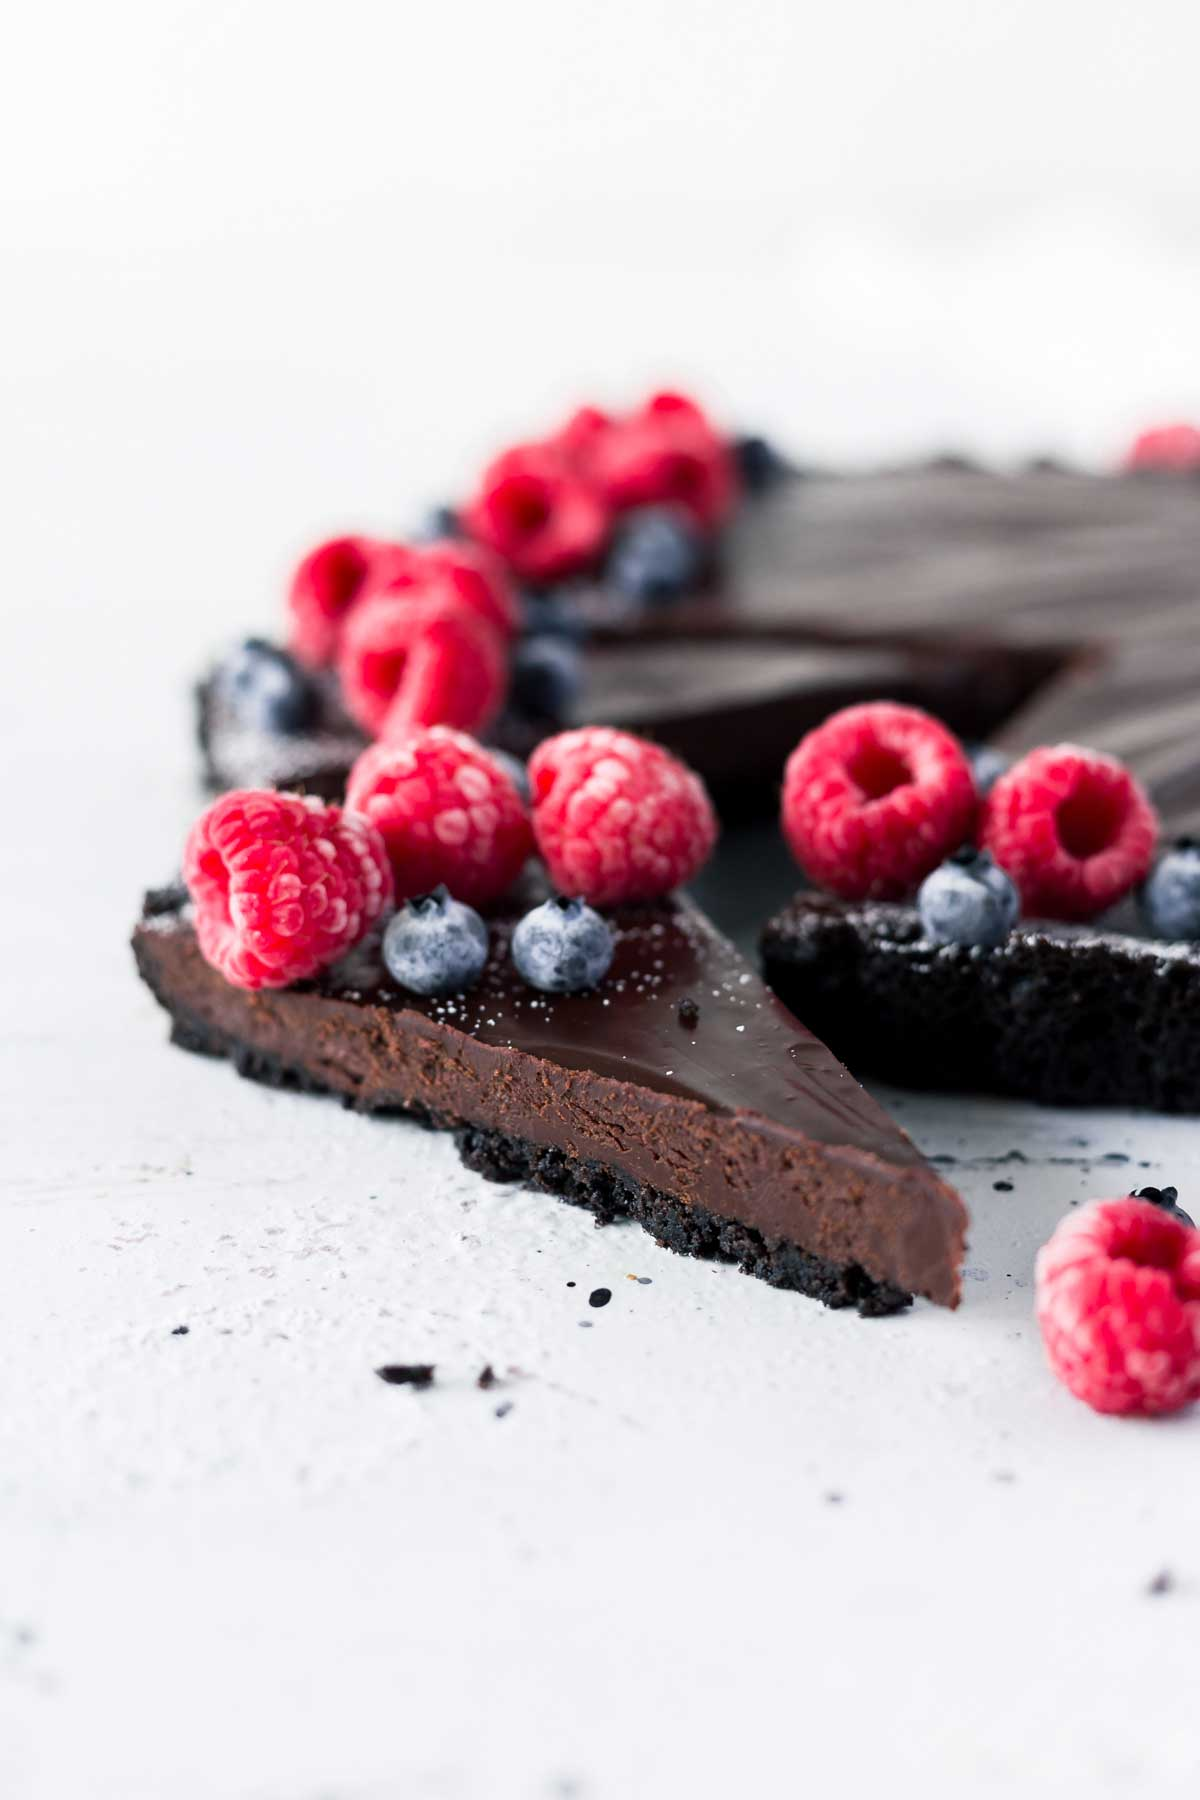 Easy Valentine's Day Dessert: Chocolate Truffle Tart